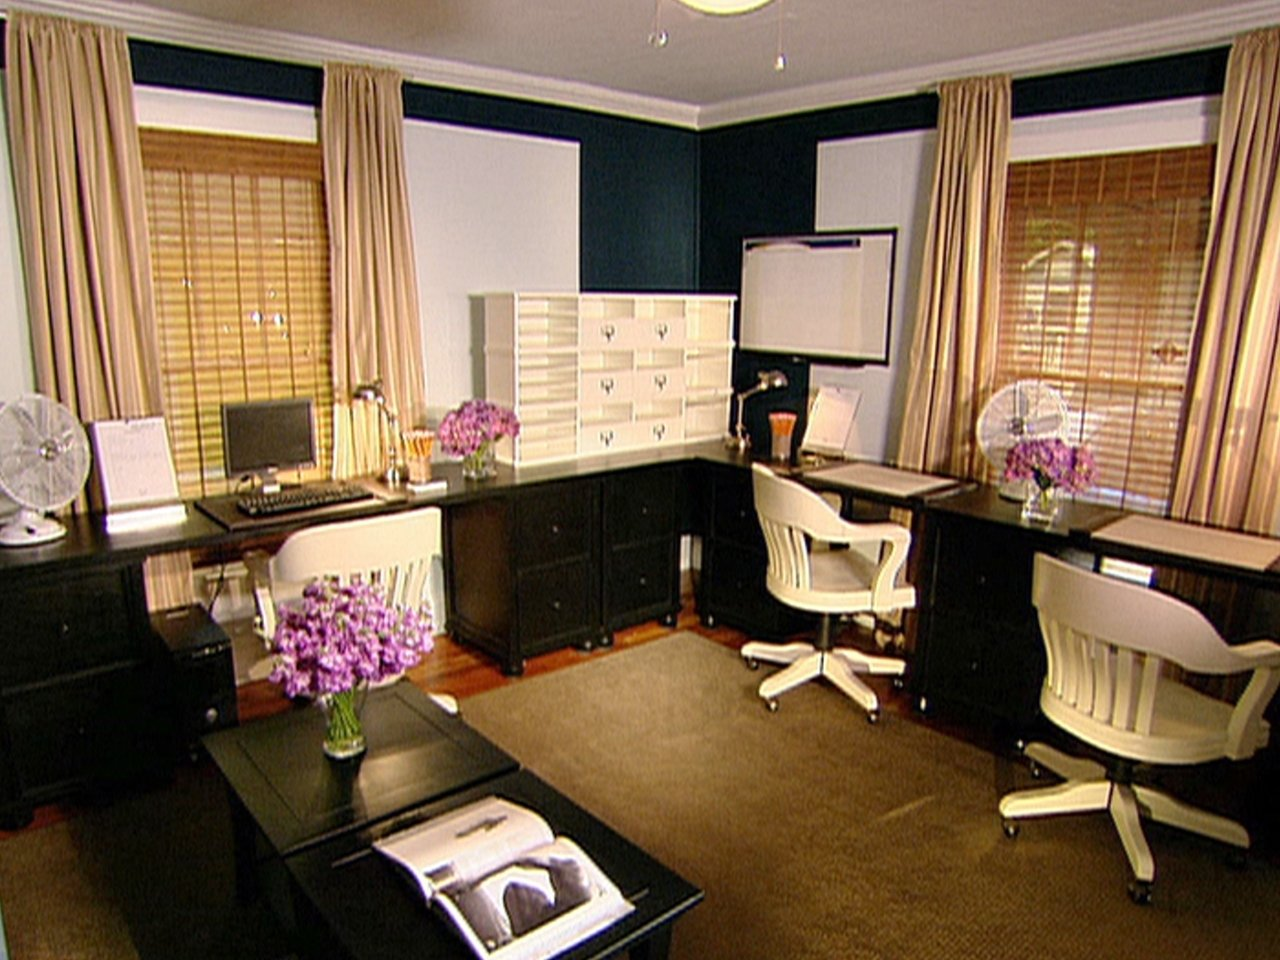 10 Best Ideas For Decorating Your Office At Work ideas for decorating your office at work skilful image of chic